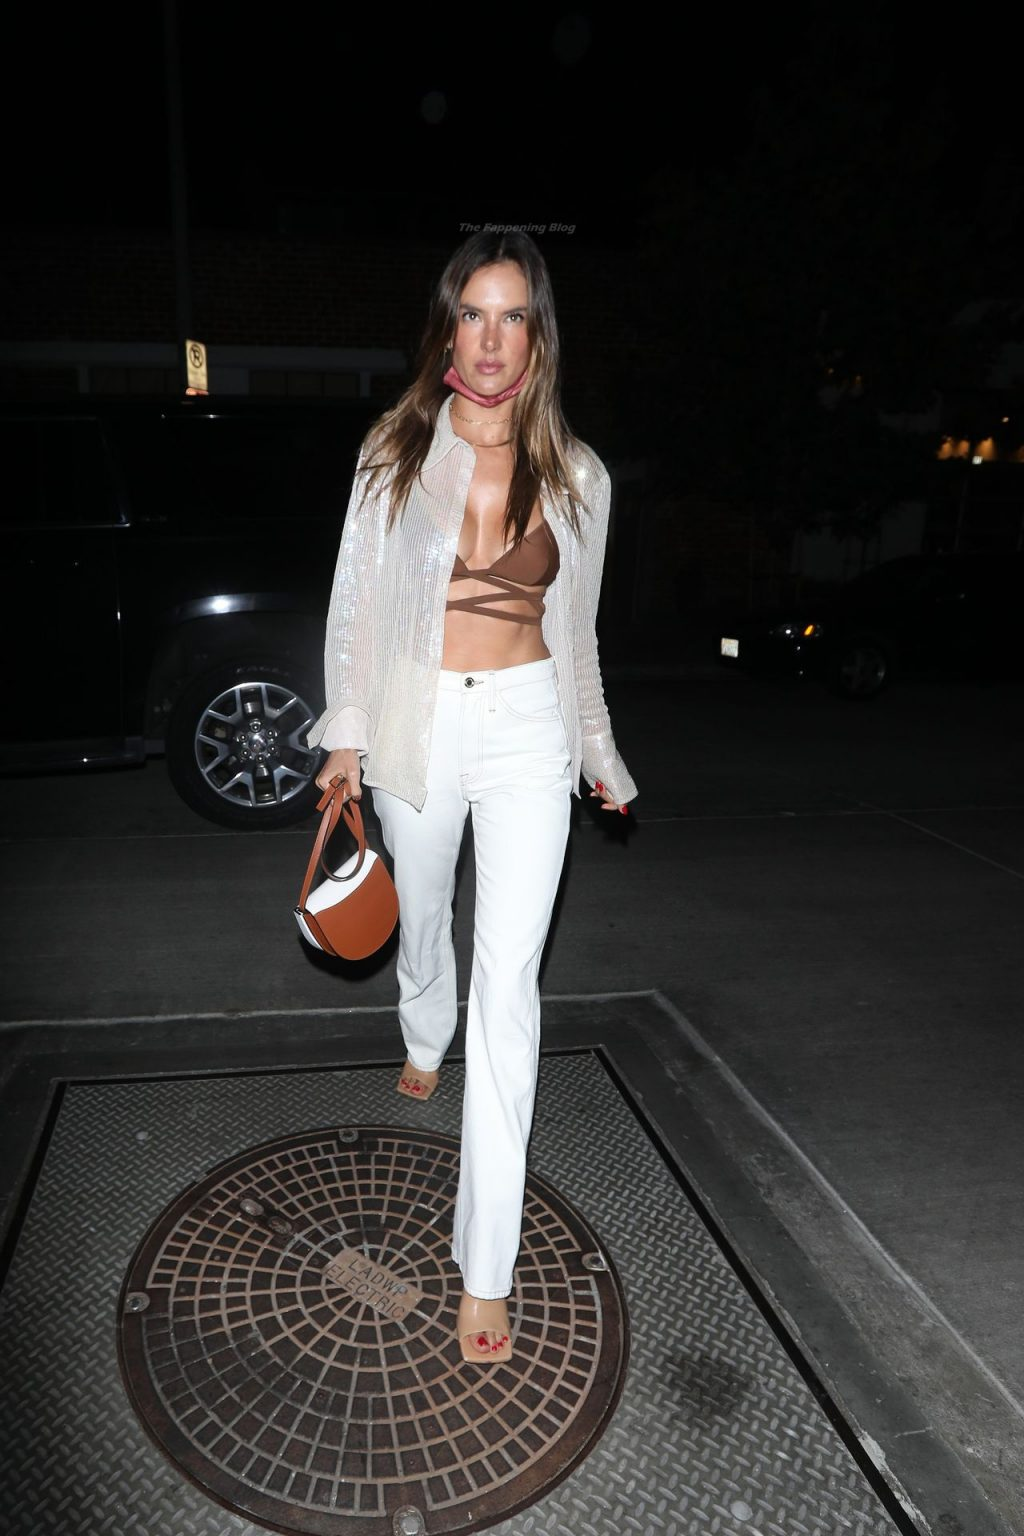 Alessandra Ambrosio Shows Off Her Toned Abs As She Grabs Dinner at Gigi's Restaurant (15 Photos)